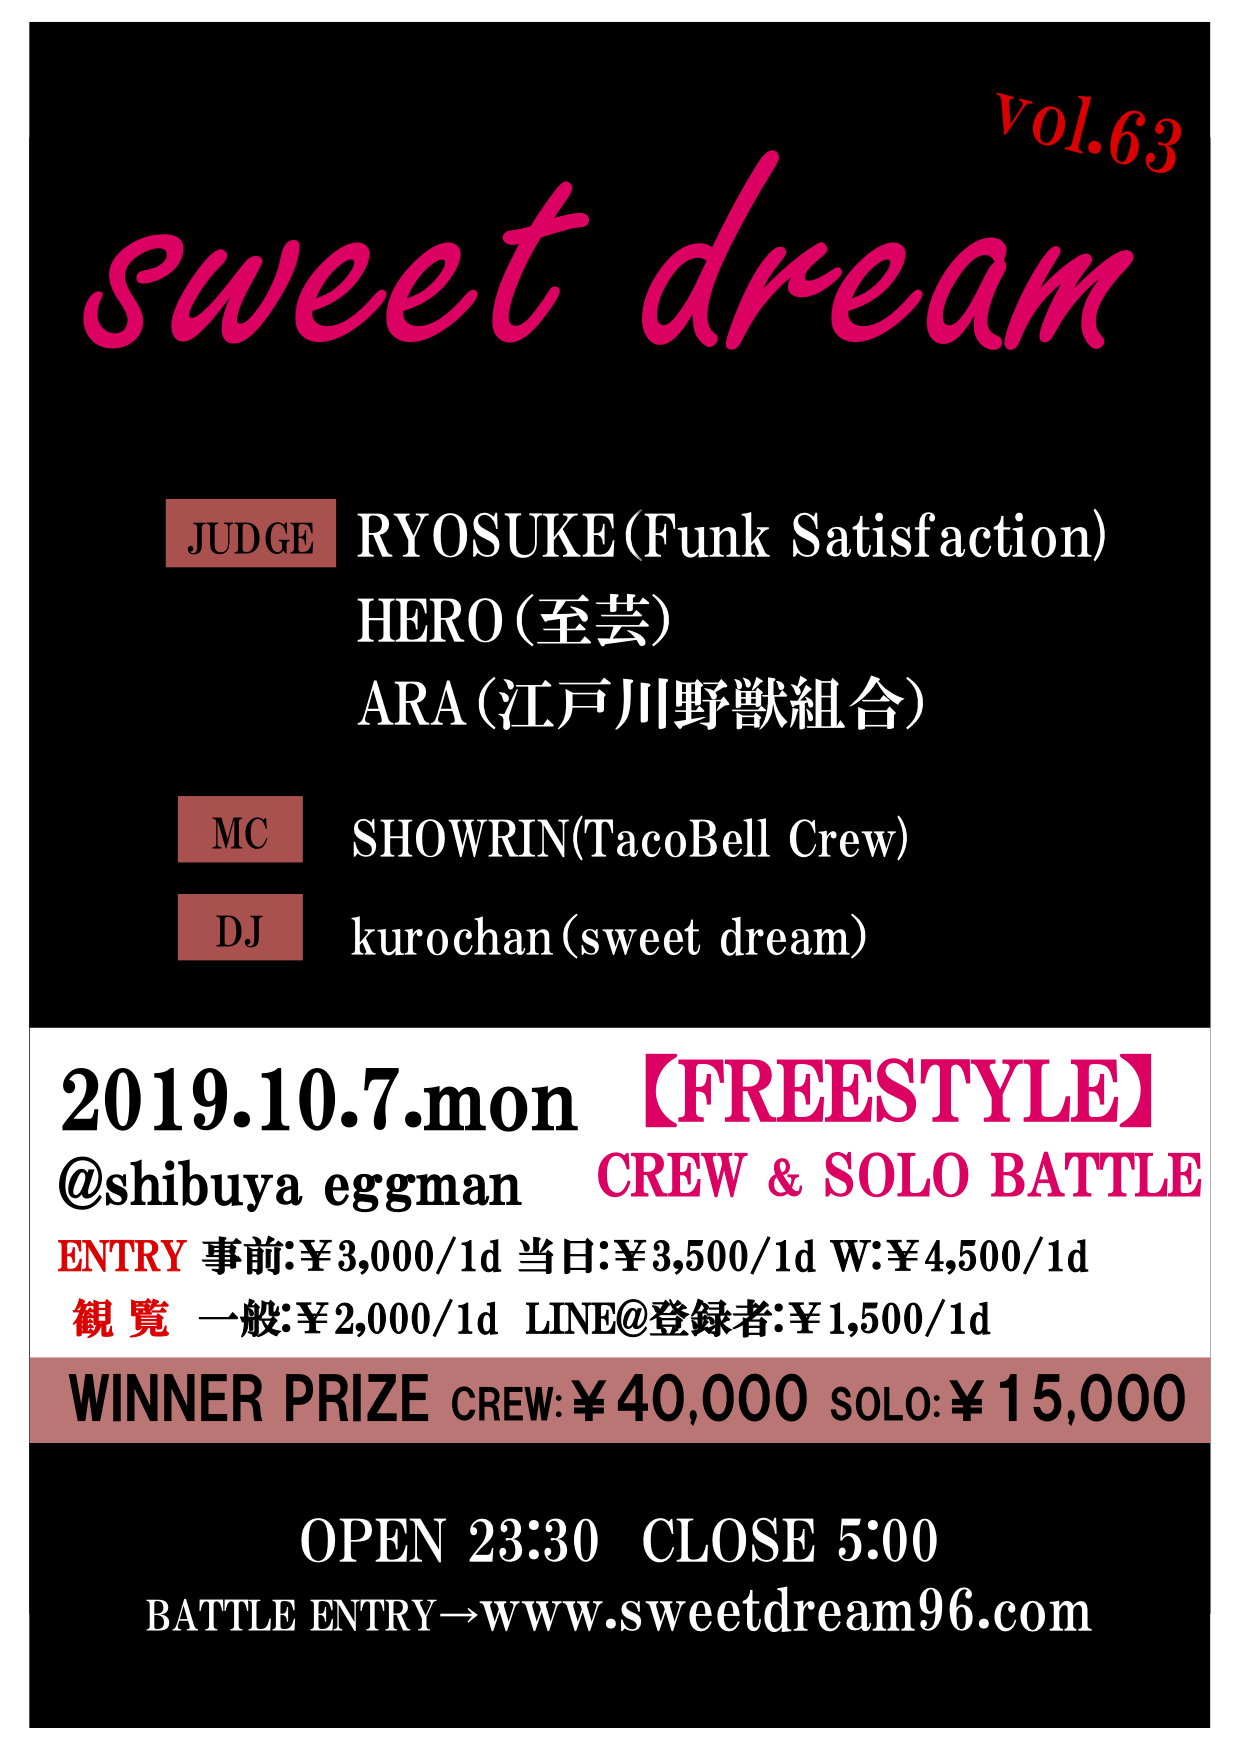 sweet dream vol.63